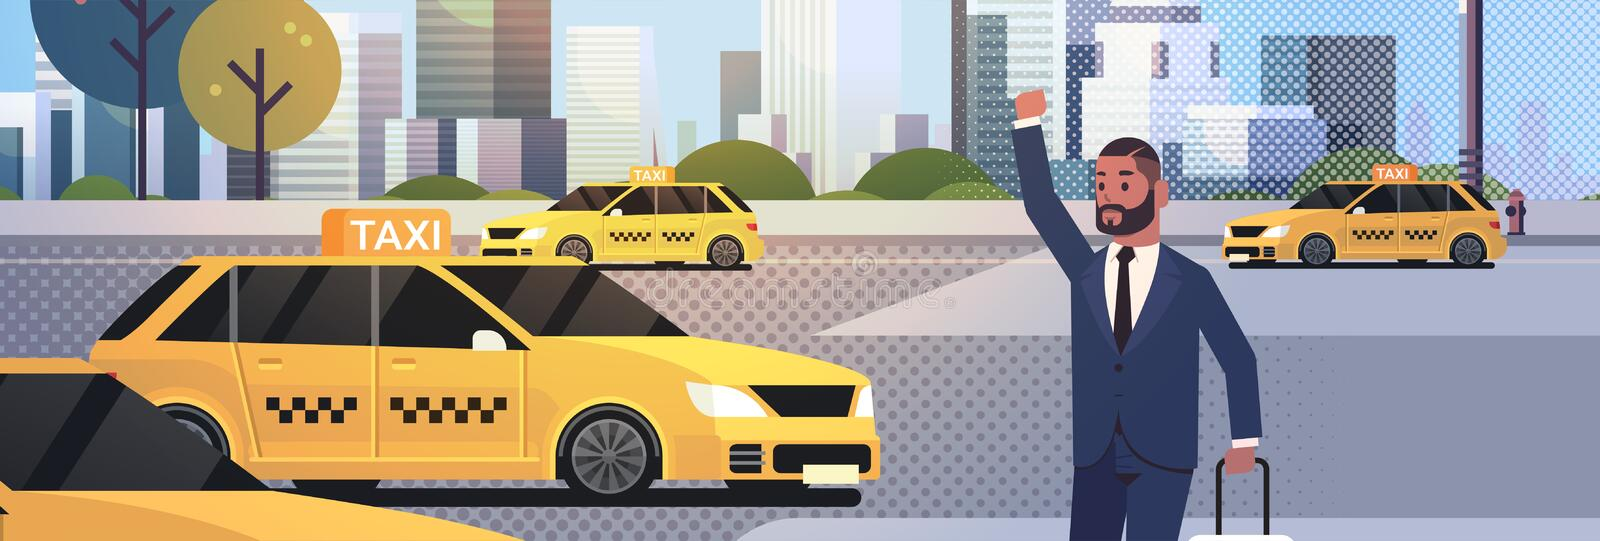 Businessman catching taxi on street african amerian business man with luggage stopping yellow cab city transportation vector illustration